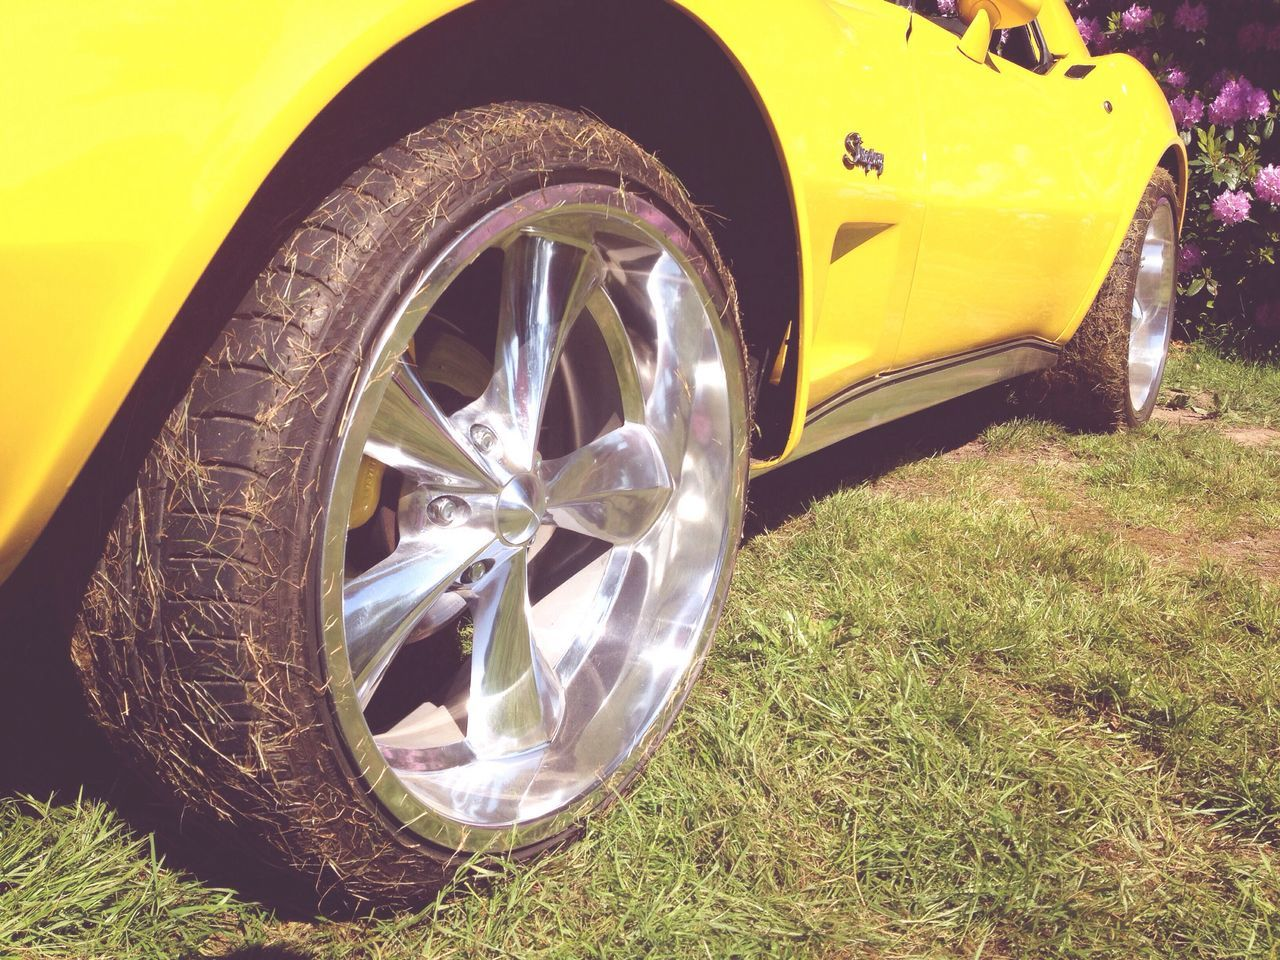 Beautiful Day Cars Car Grassy Awesome Cars CarShow Car Collection Denmark Is Awesome Yellow Tire Wheel Outdoors Day Iphone4only Weather Sun